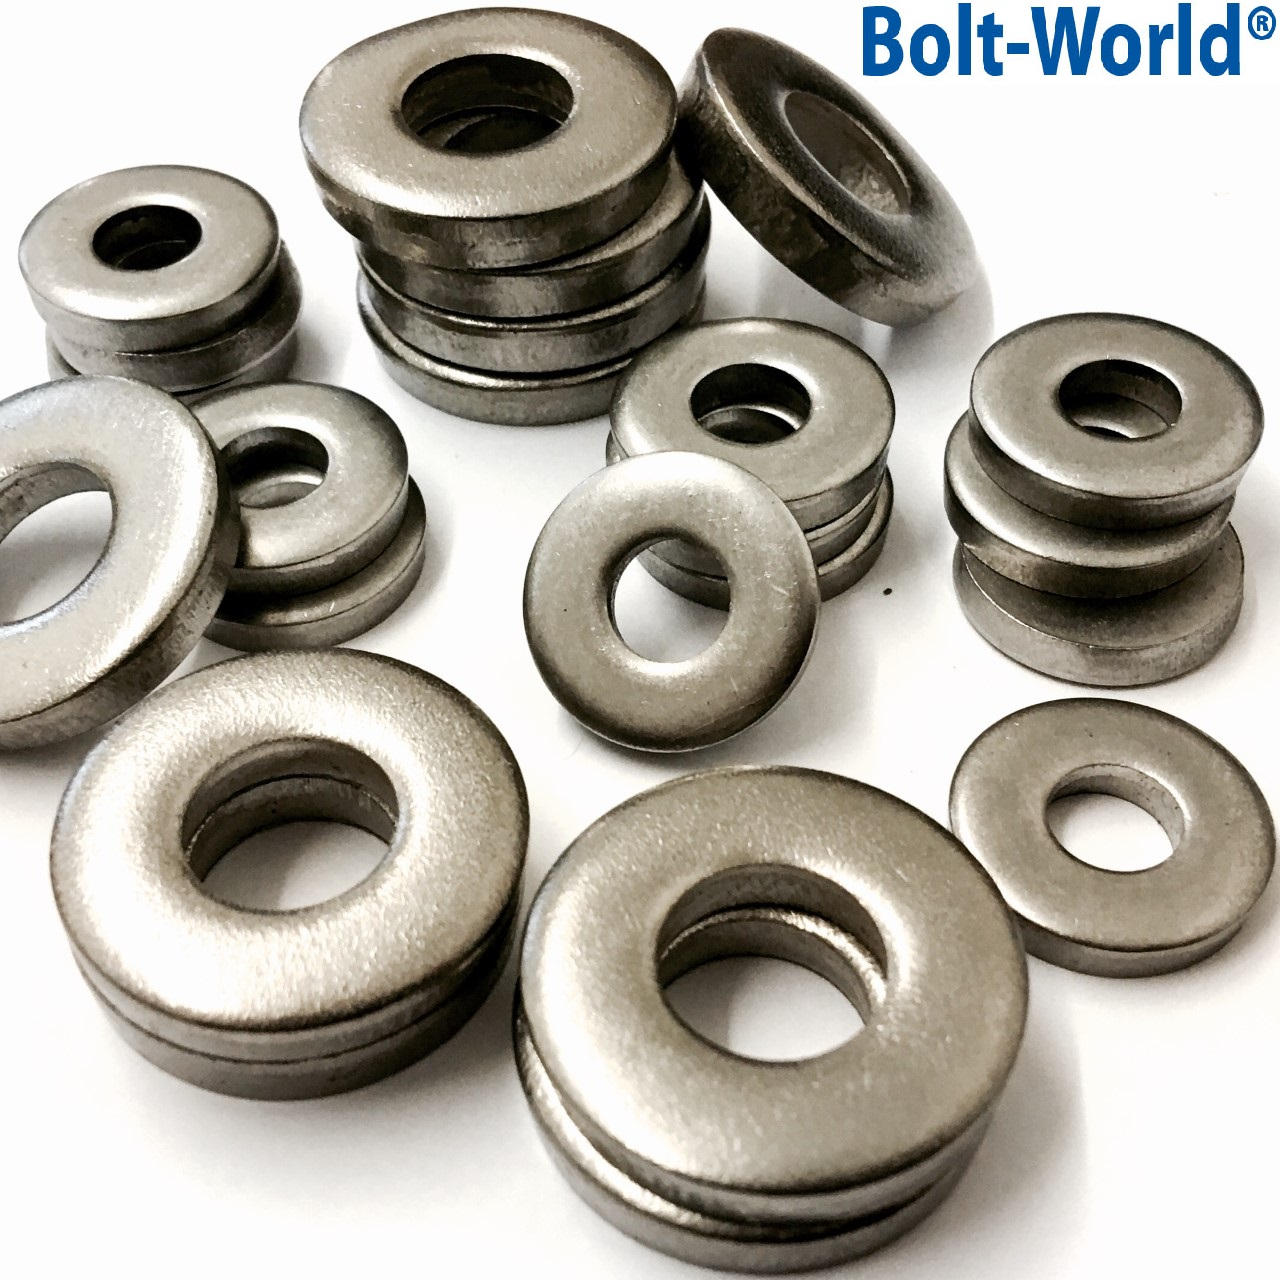 Extra thick flat spacer washers a stainless steel din